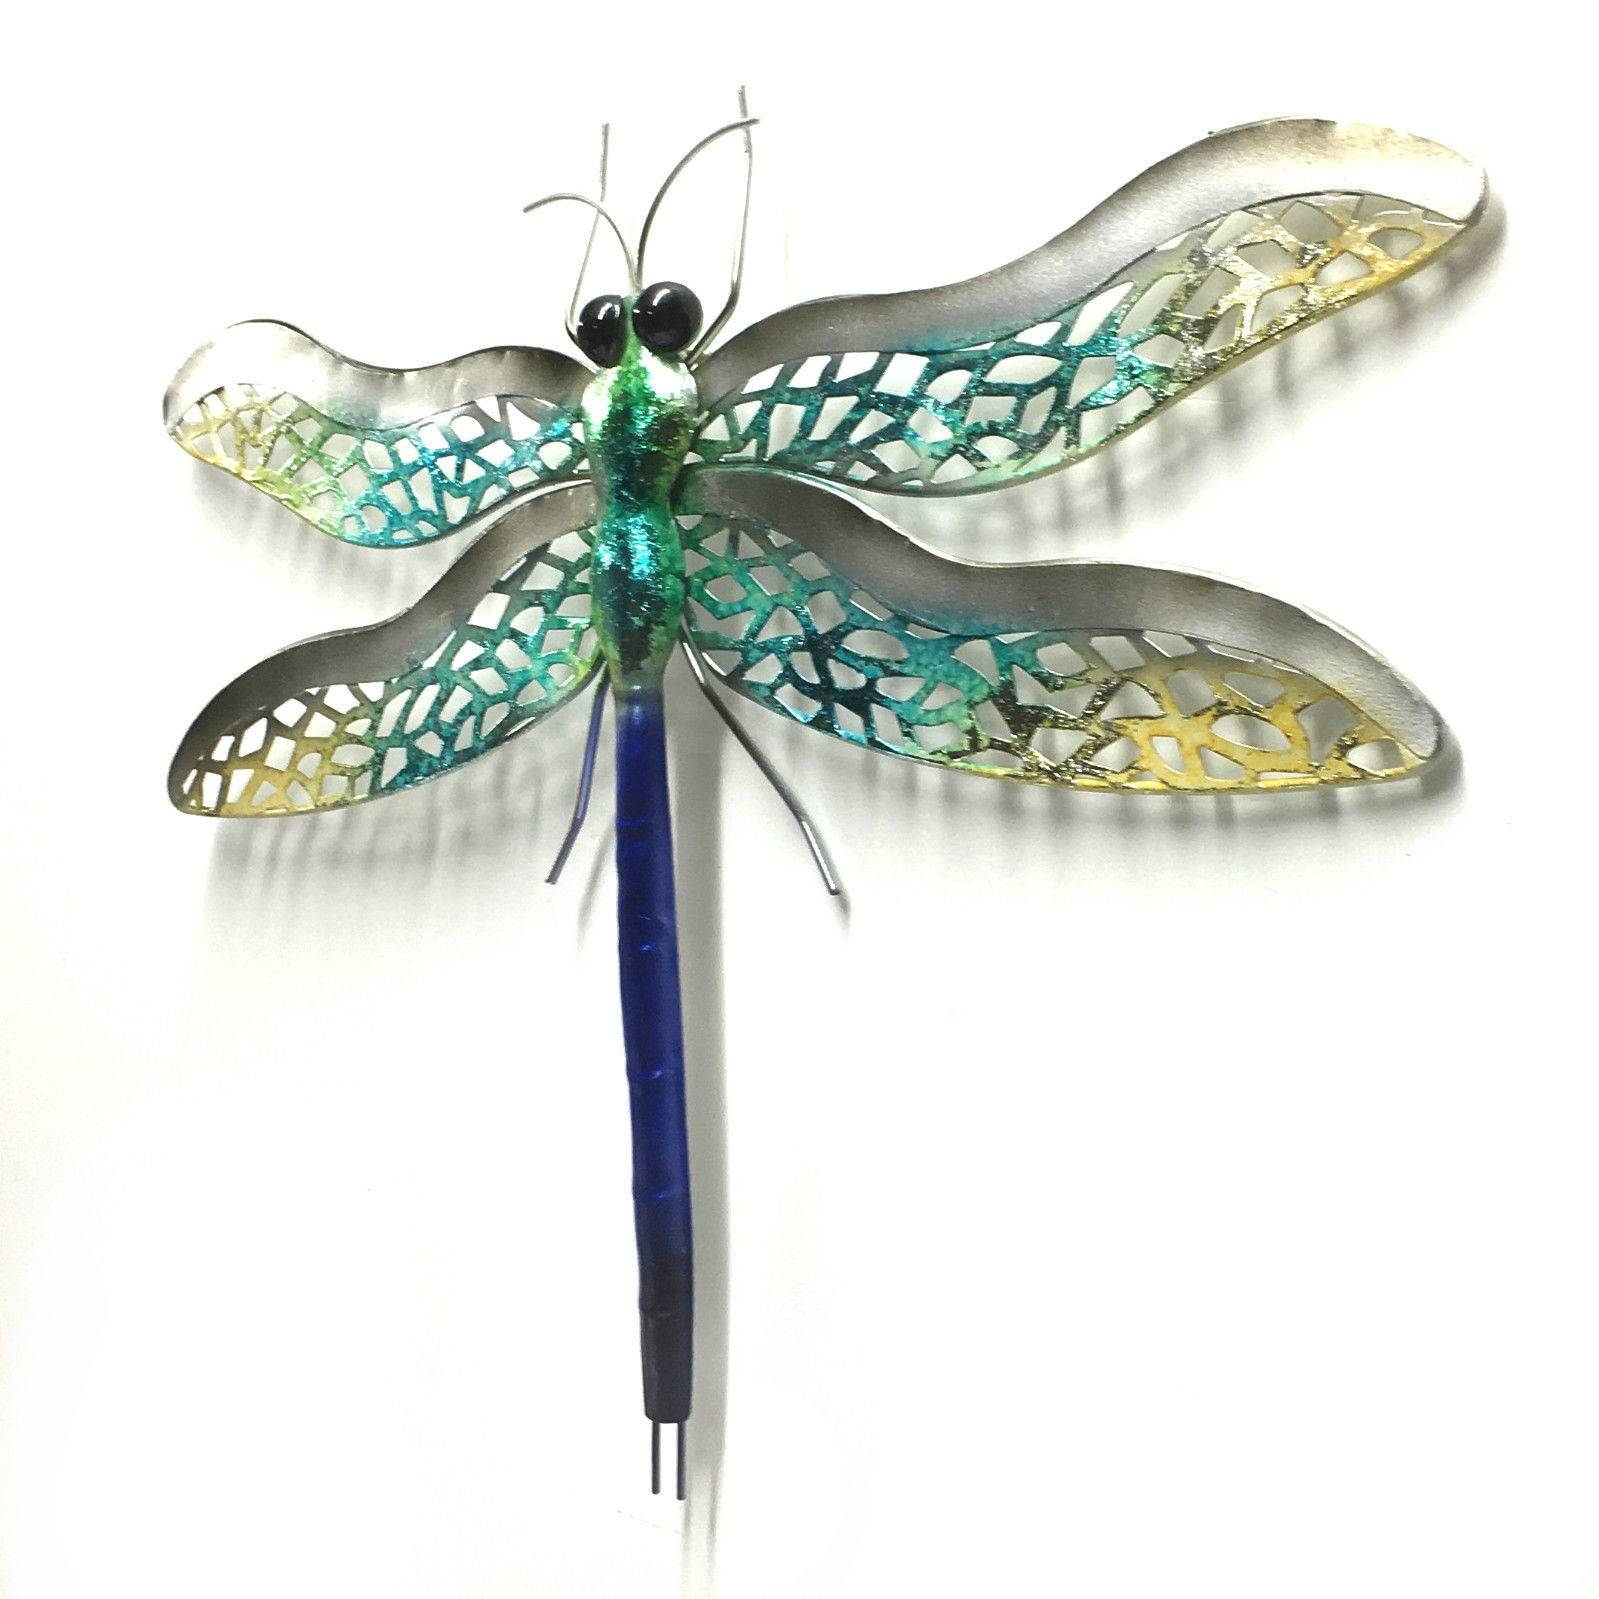 Dragonfly Metal Wall Art Hanging Iron Ornament Garden Sculpture Regarding Most Popular Dragonfly Metal Wall Art (View 4 of 20)